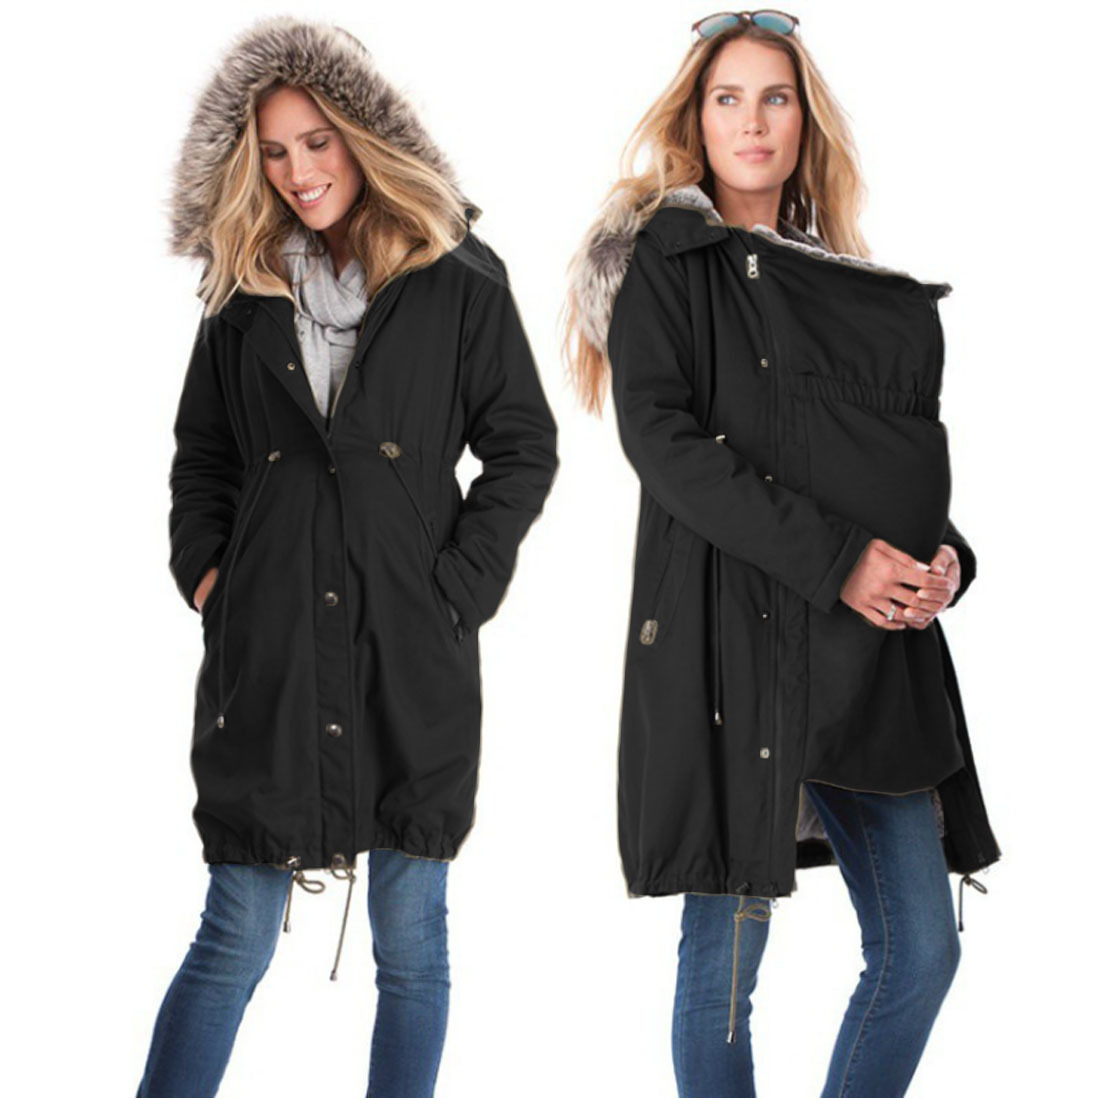 MAGGIES WALKER Winter Maternity Clothings Pregnant Woman Baby Carrier Hoody Kangaroo Zipper Coats Mom and Baby Maternity Coats<br>